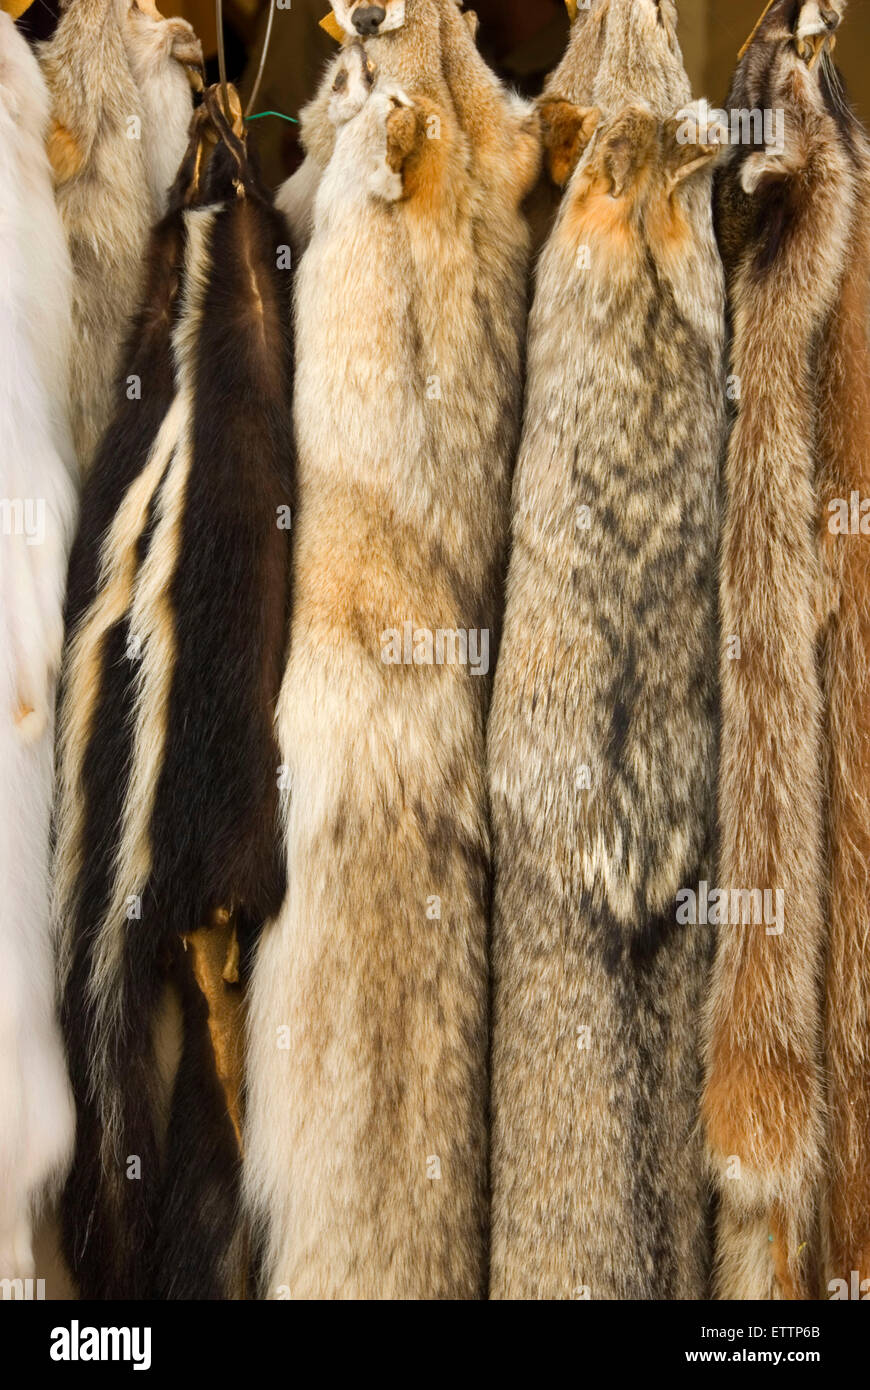 Furs, Grizzly Mountain Long Rifles Horse Ridge Rendezvous, Deschutes County, Oregon Stock Photo